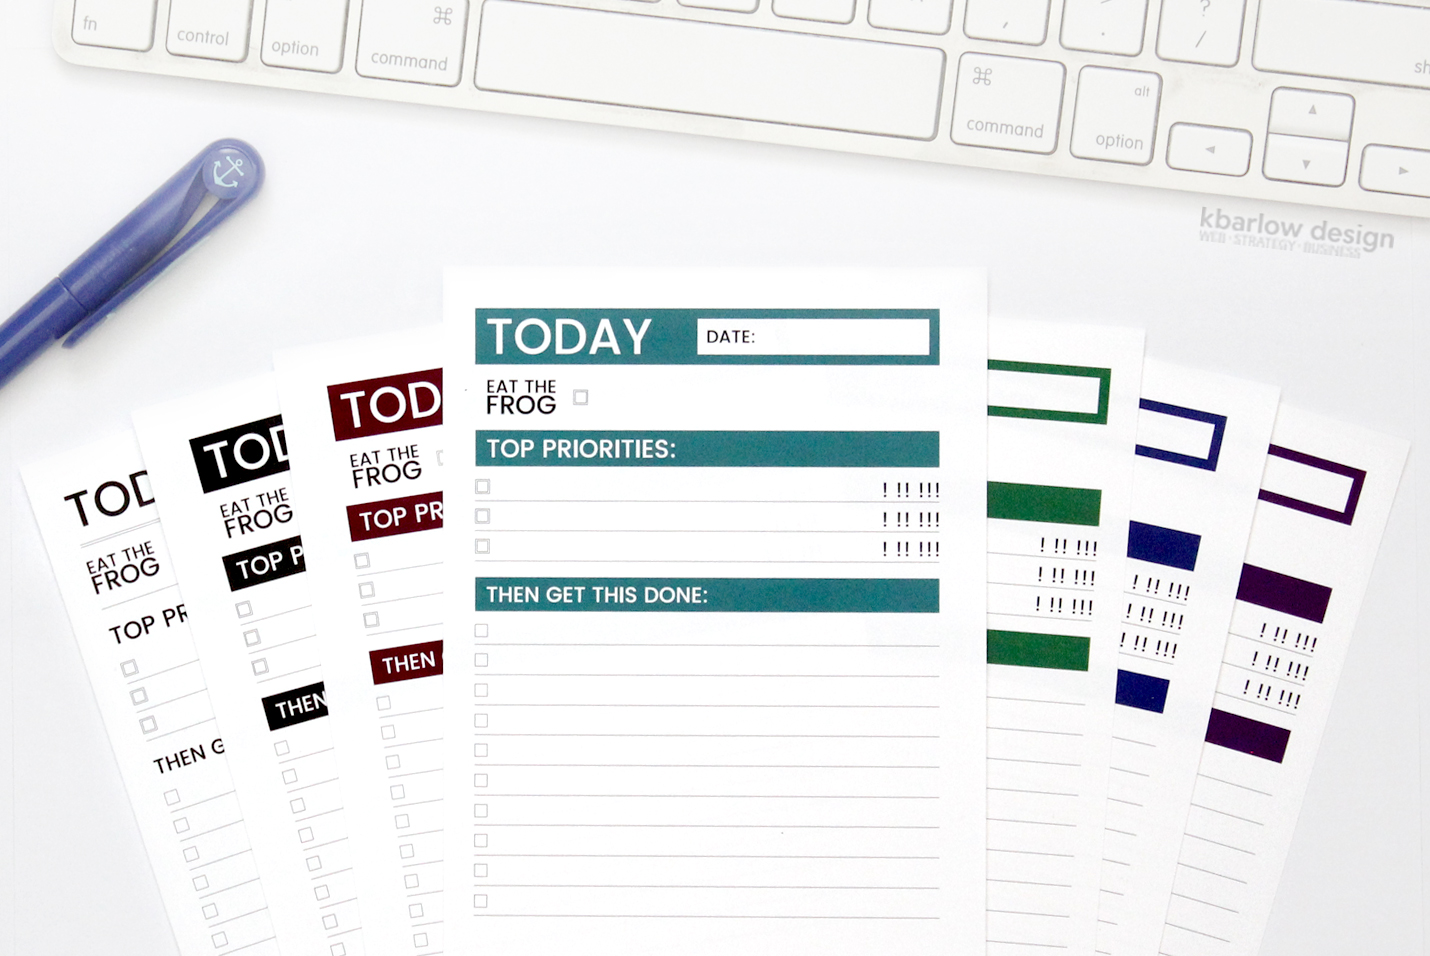 The Ultimate To Do List - Productivity Planners | kbarlowdesign.com